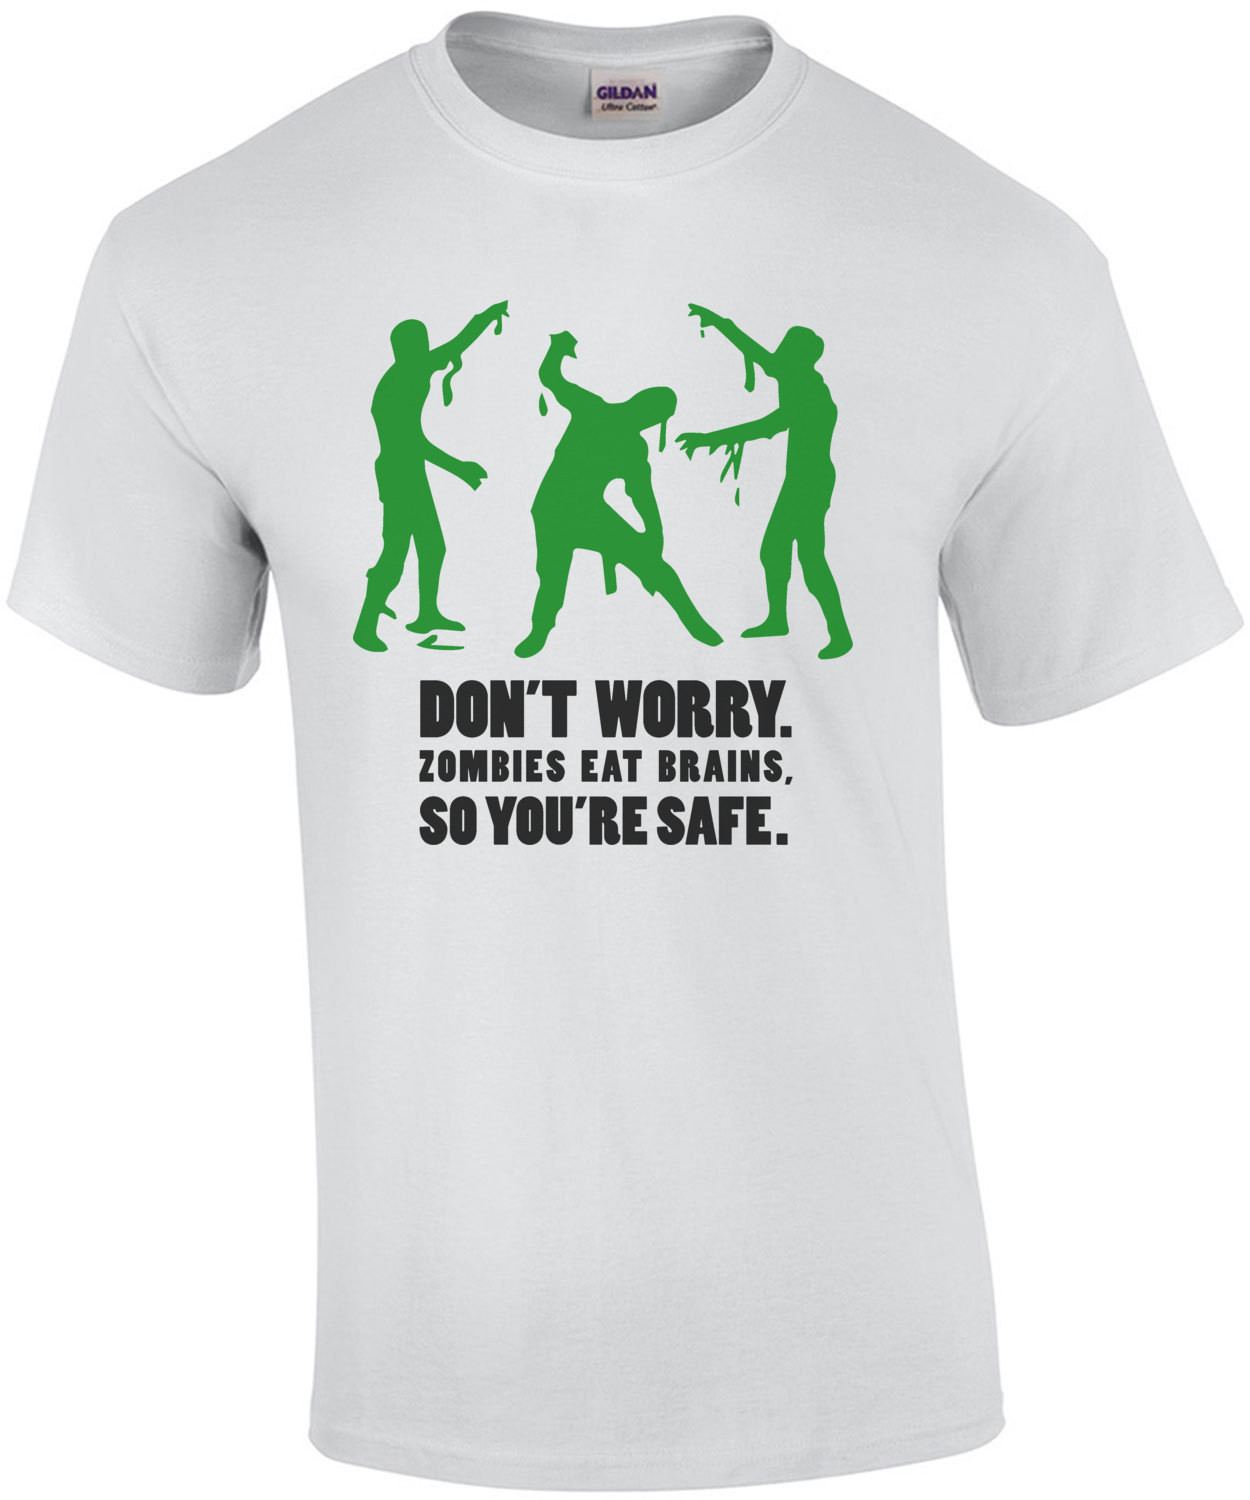 Don't worry. Zombies eat brains, so you're safe. Funny Zombie T-Shirt